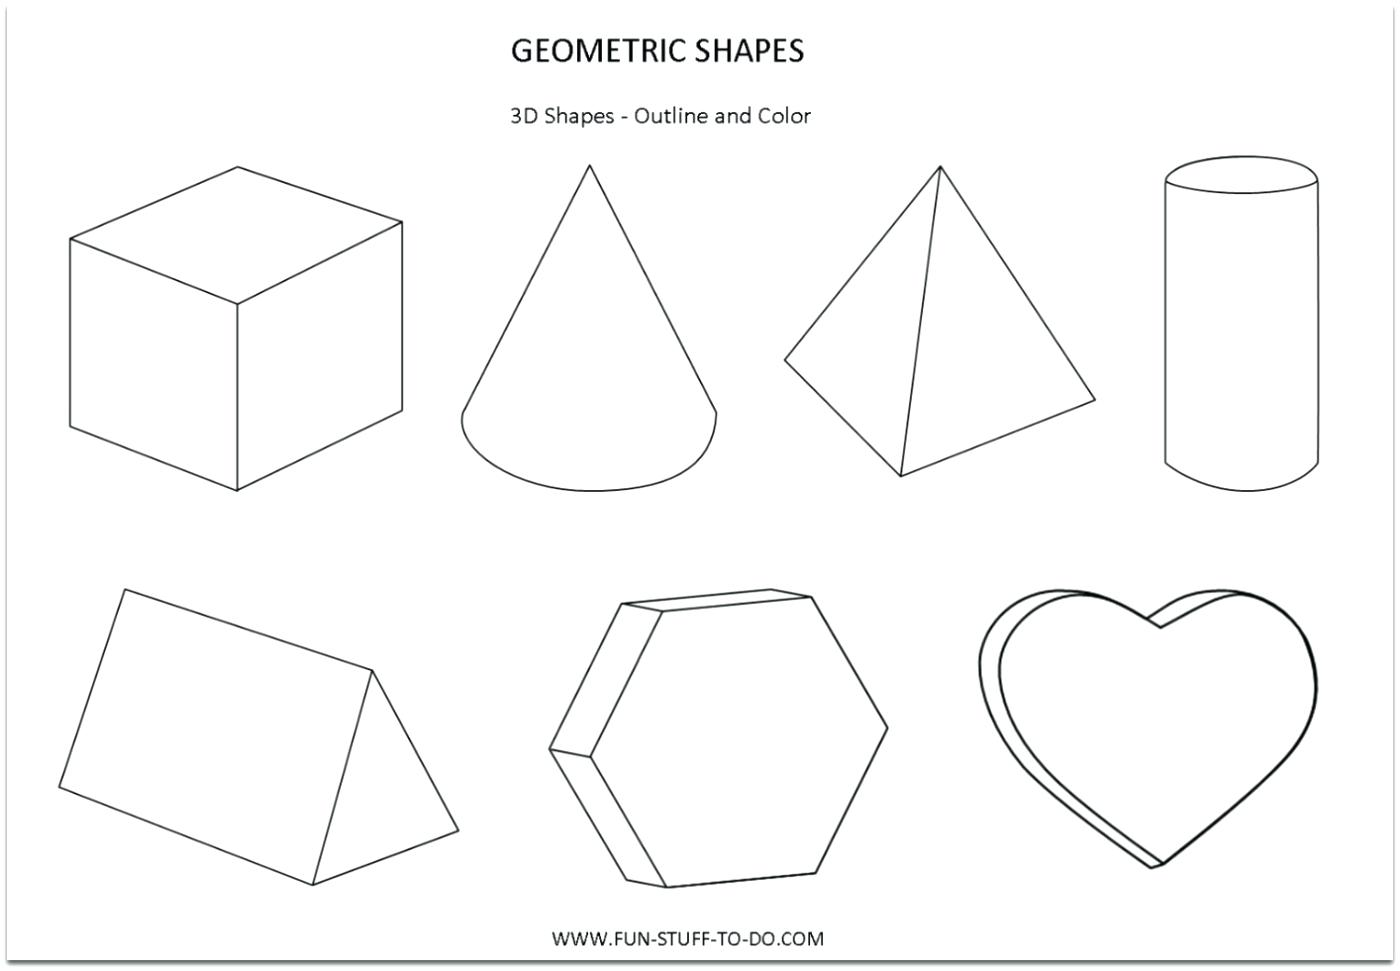 3d Cone Drawing at GetDrawings.com | Free for personal use ... - photo#24